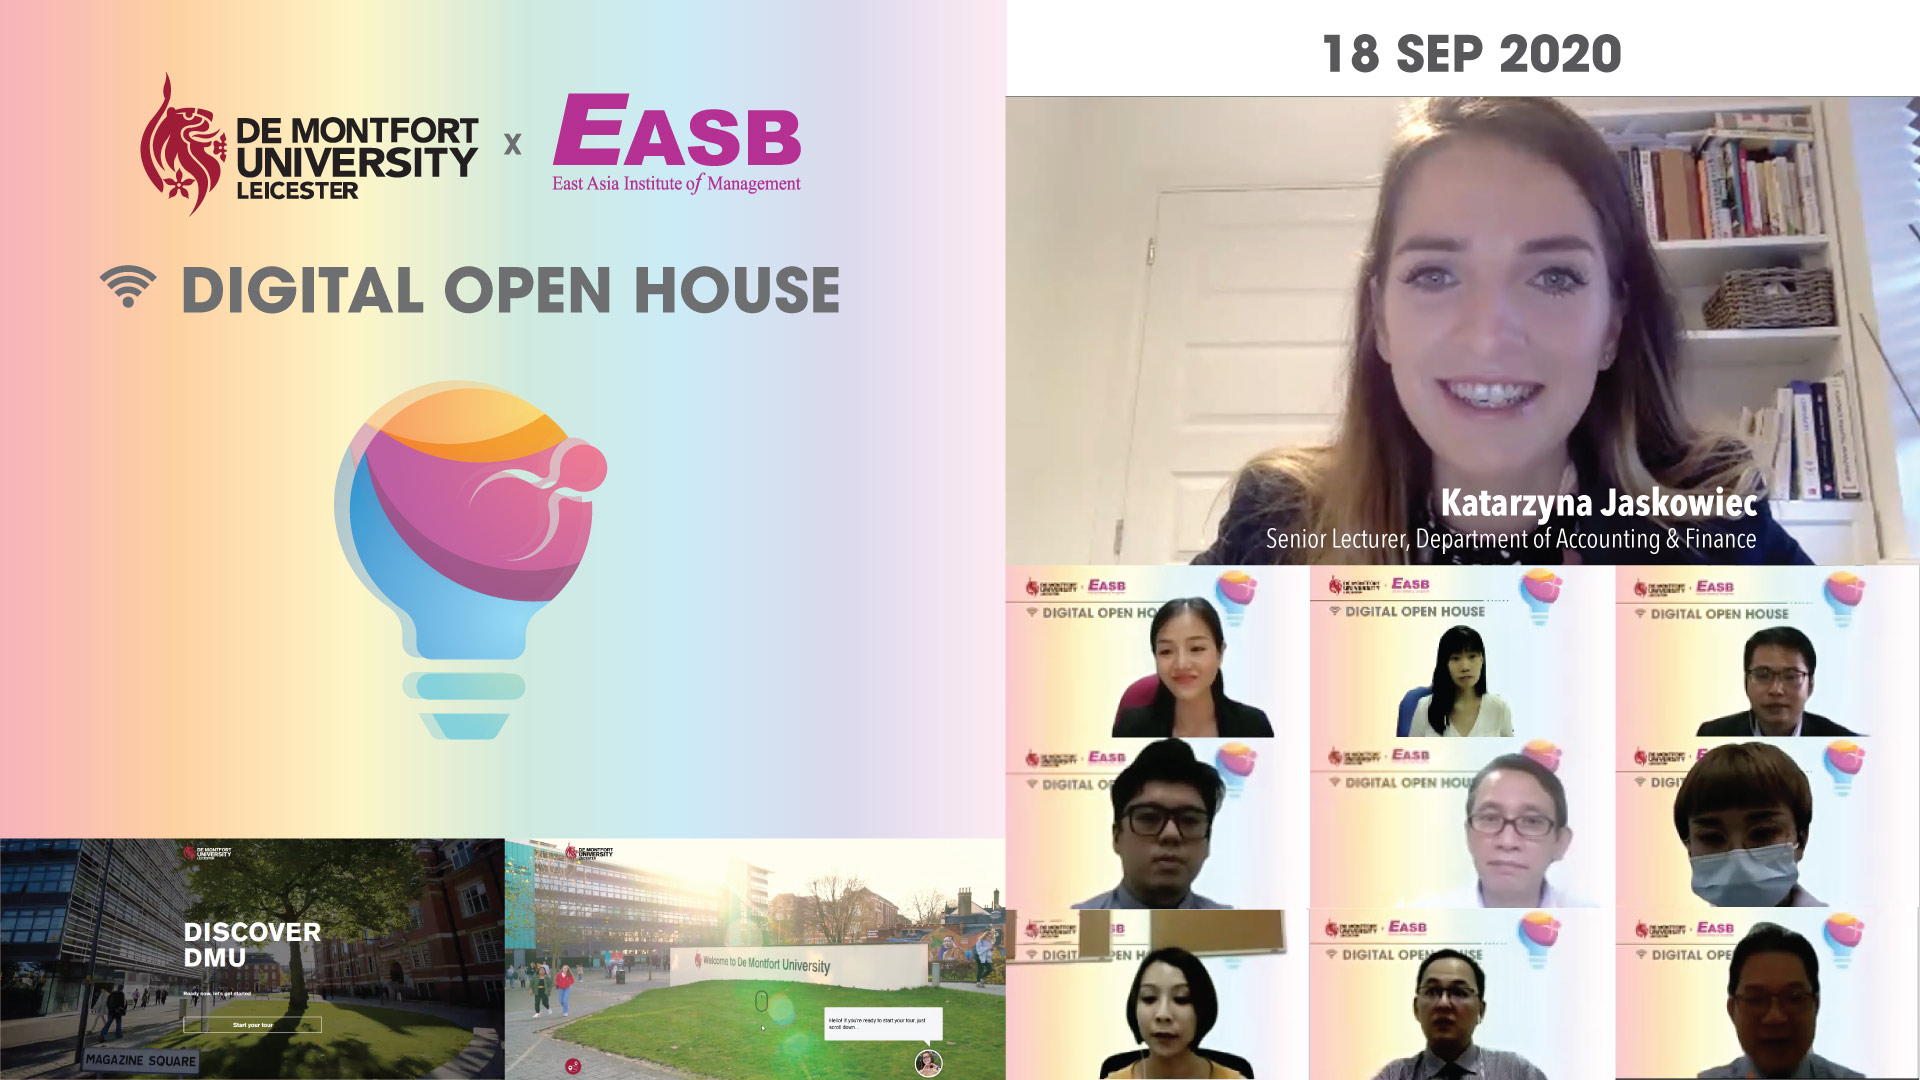 De Montfort University Digital Open House